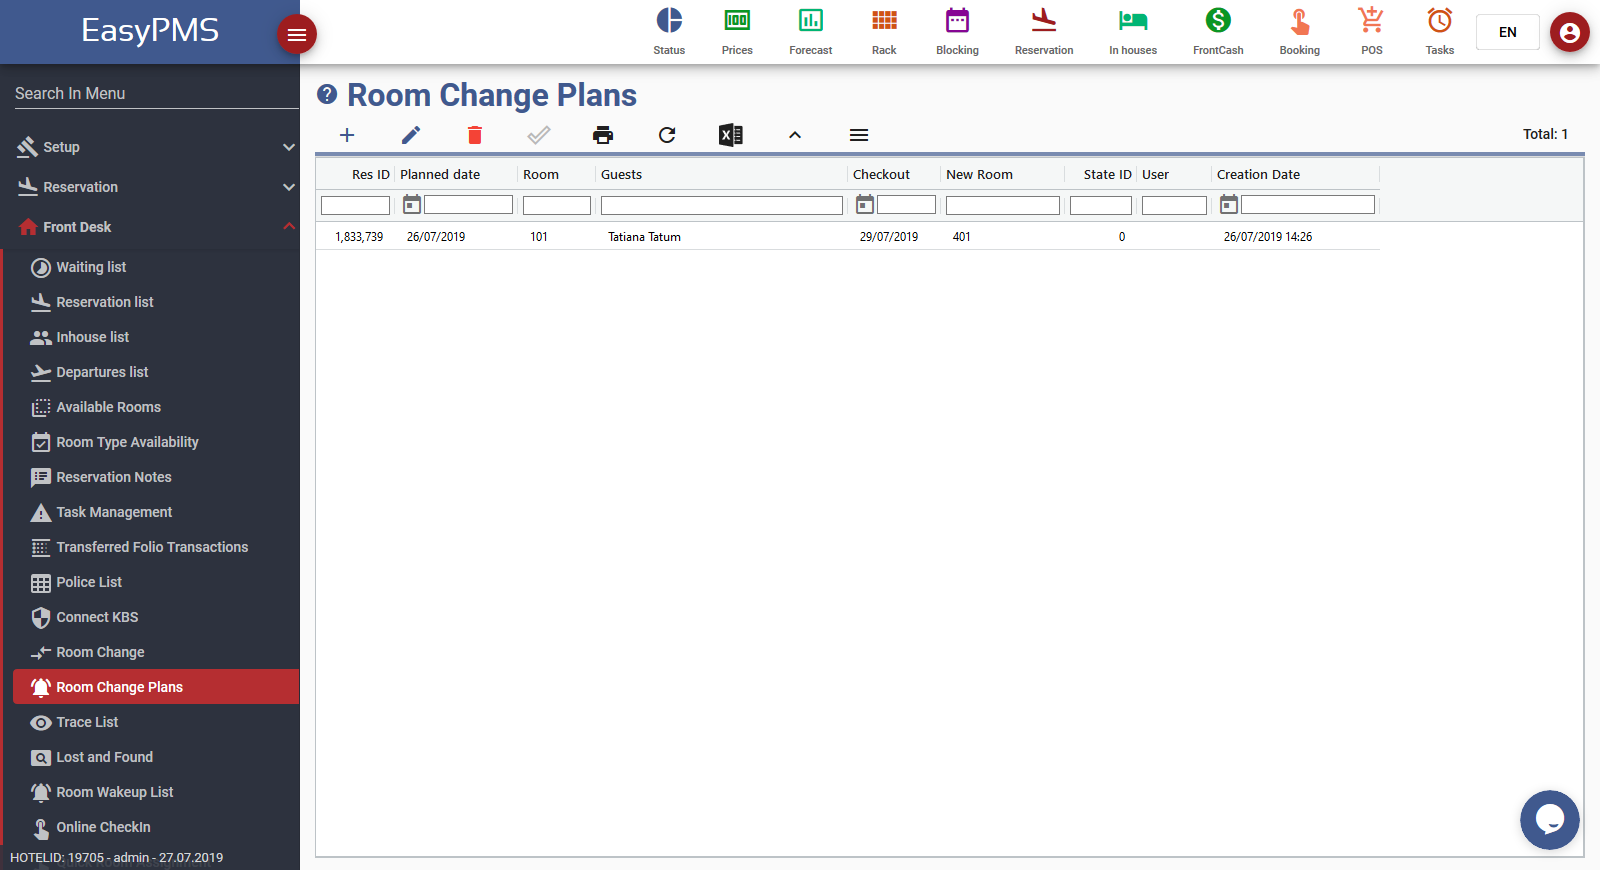 easypms hotel software room change plans